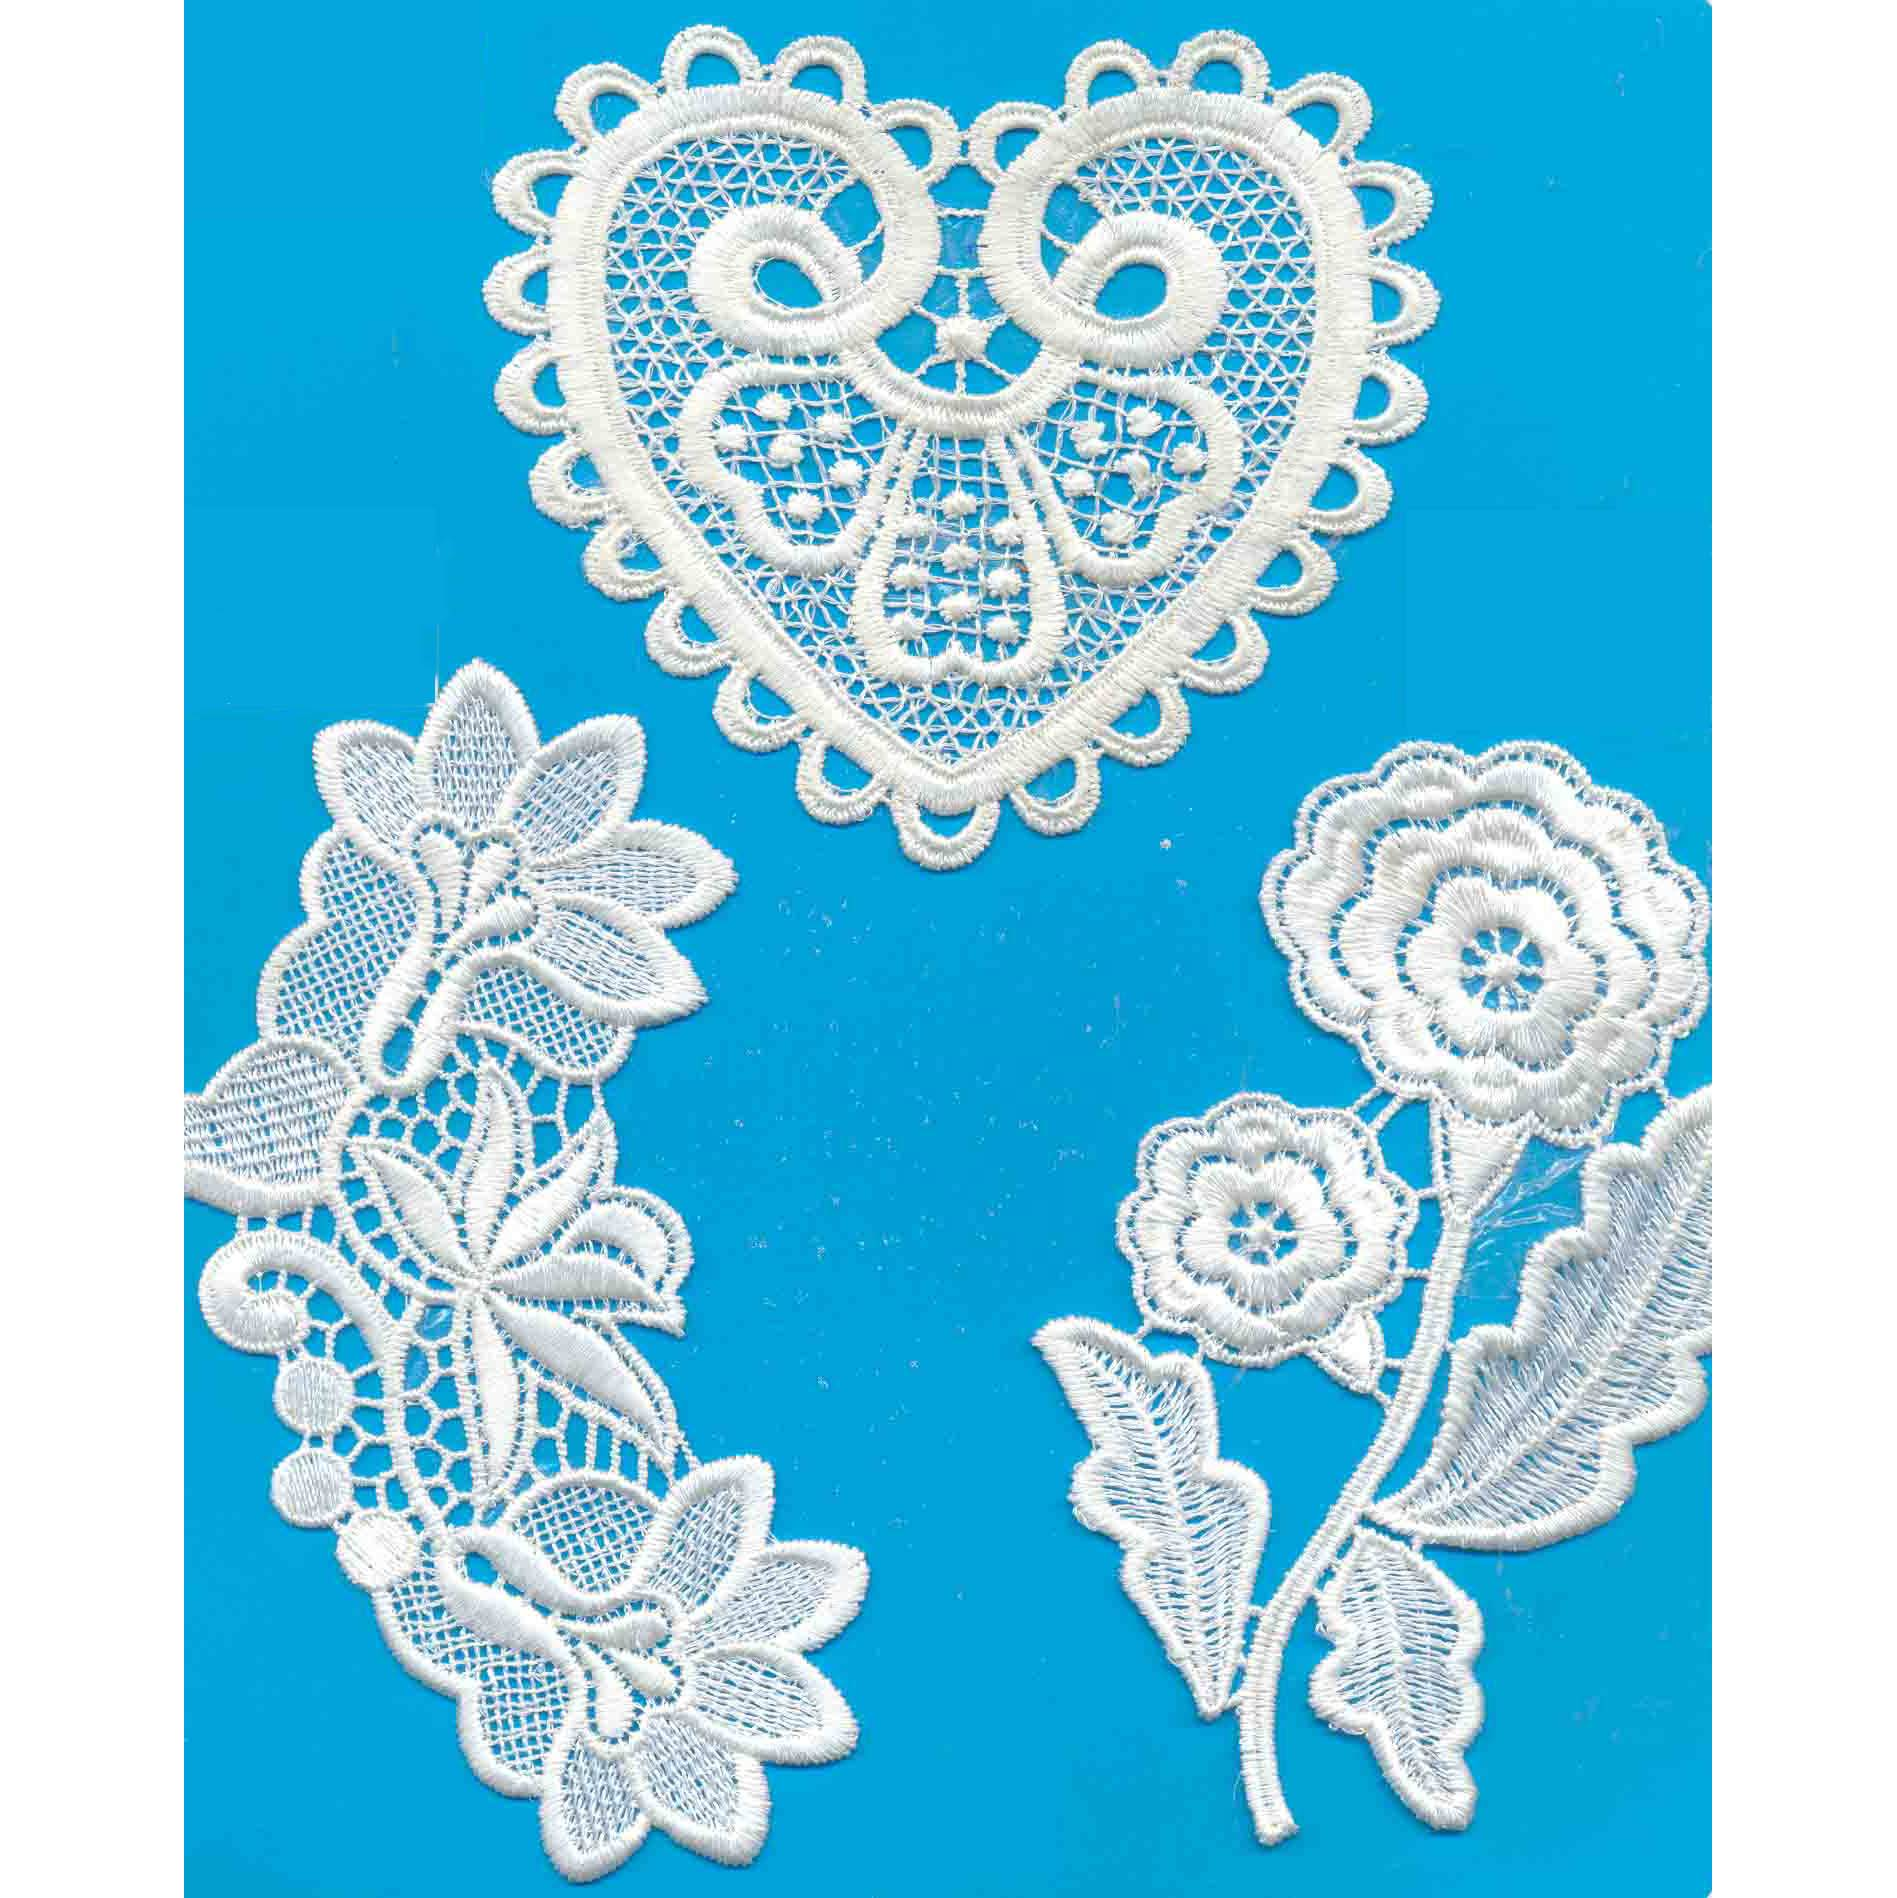 Water-soluble embroidery digitizing